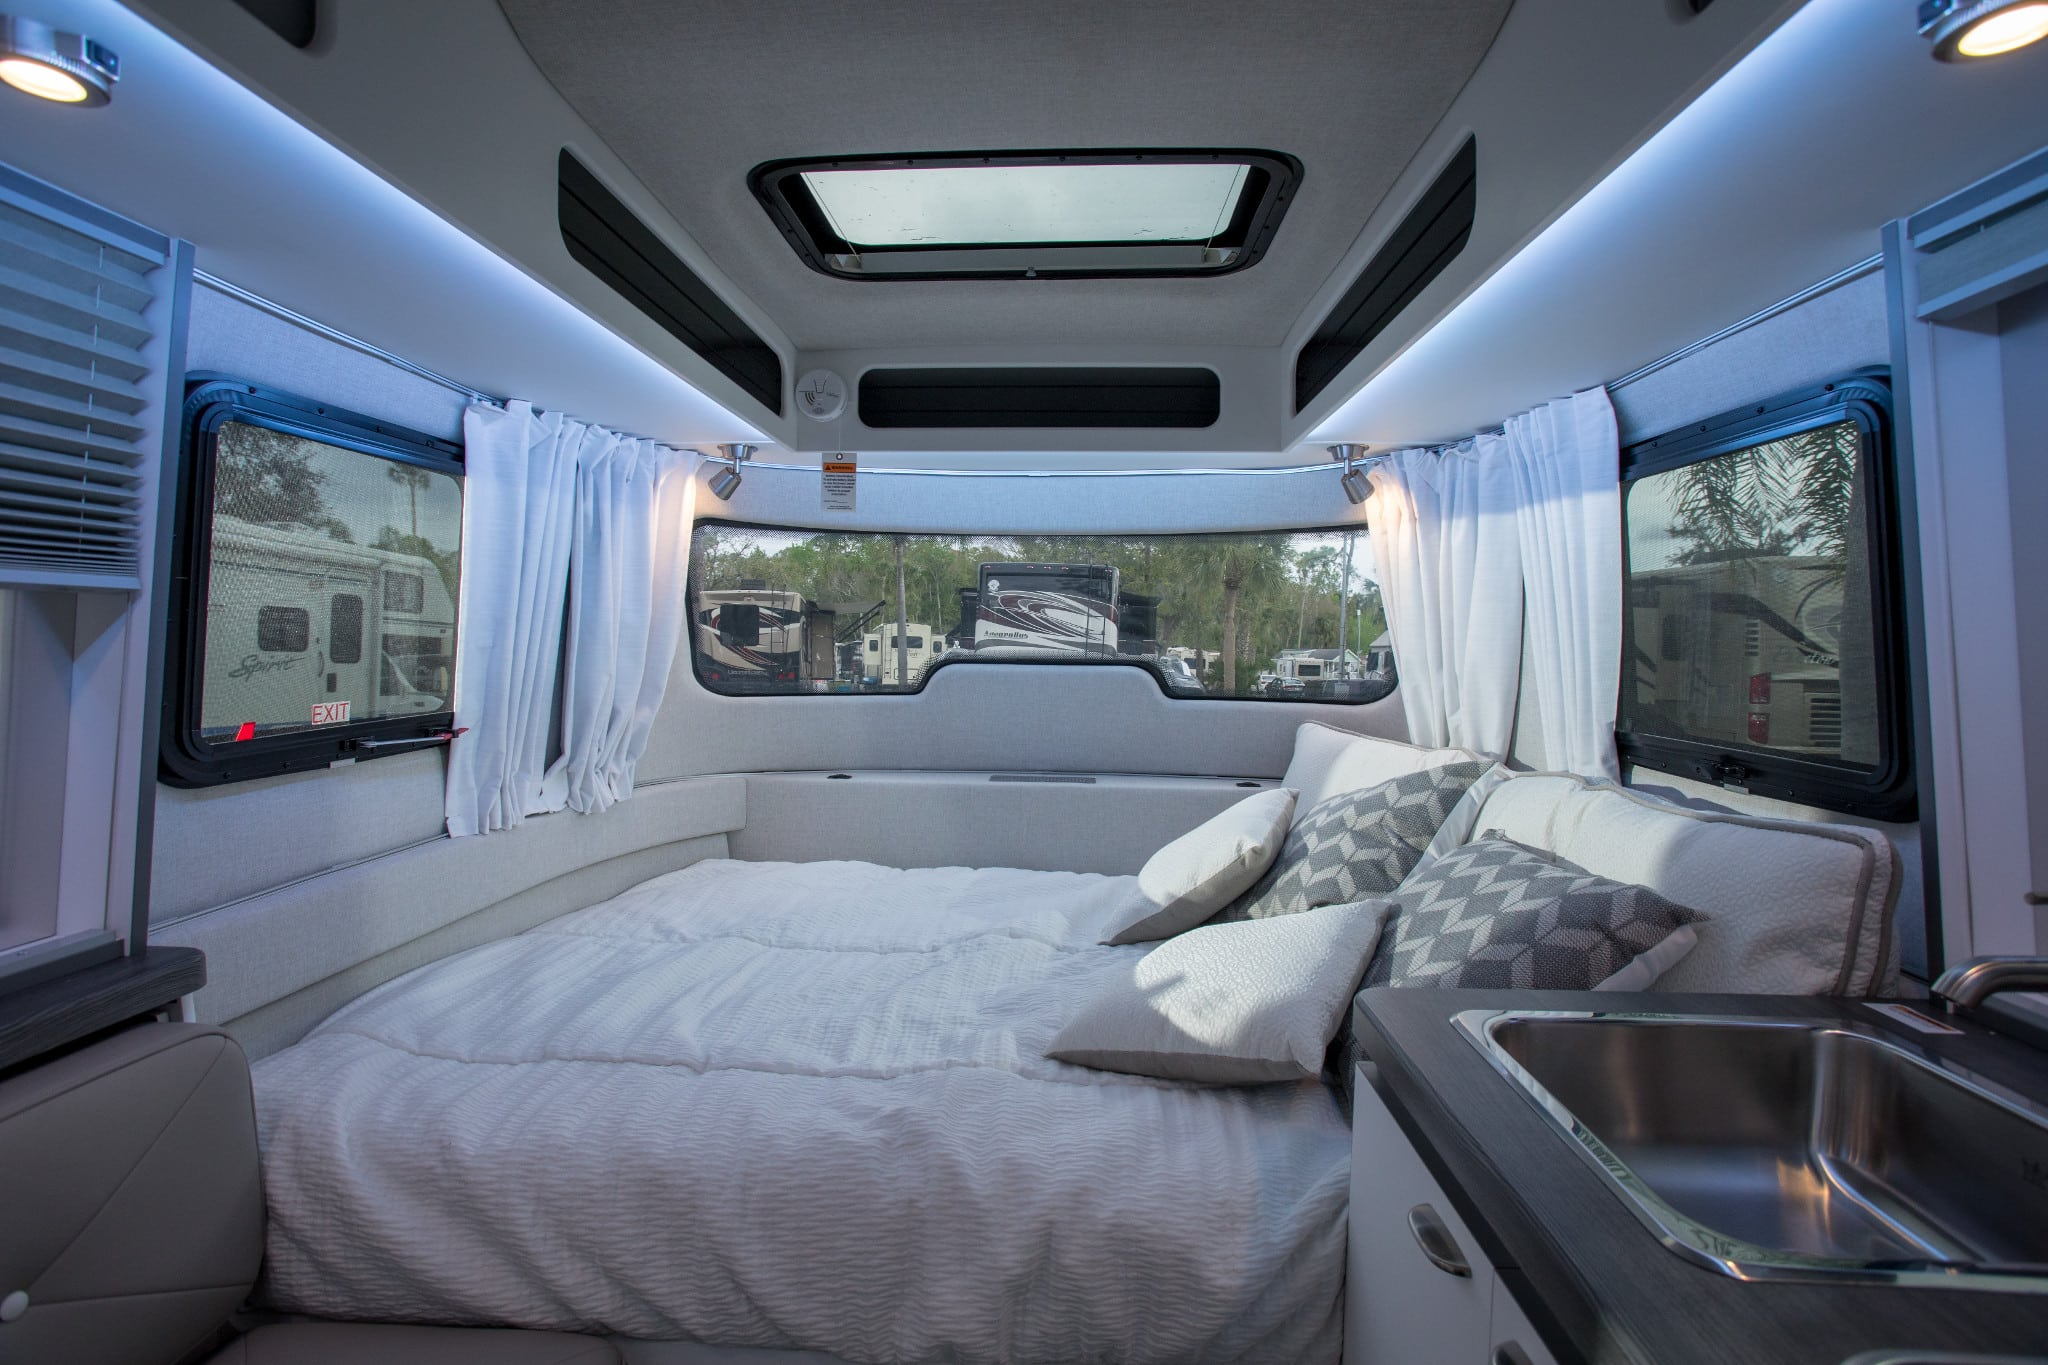 Interior of an RV